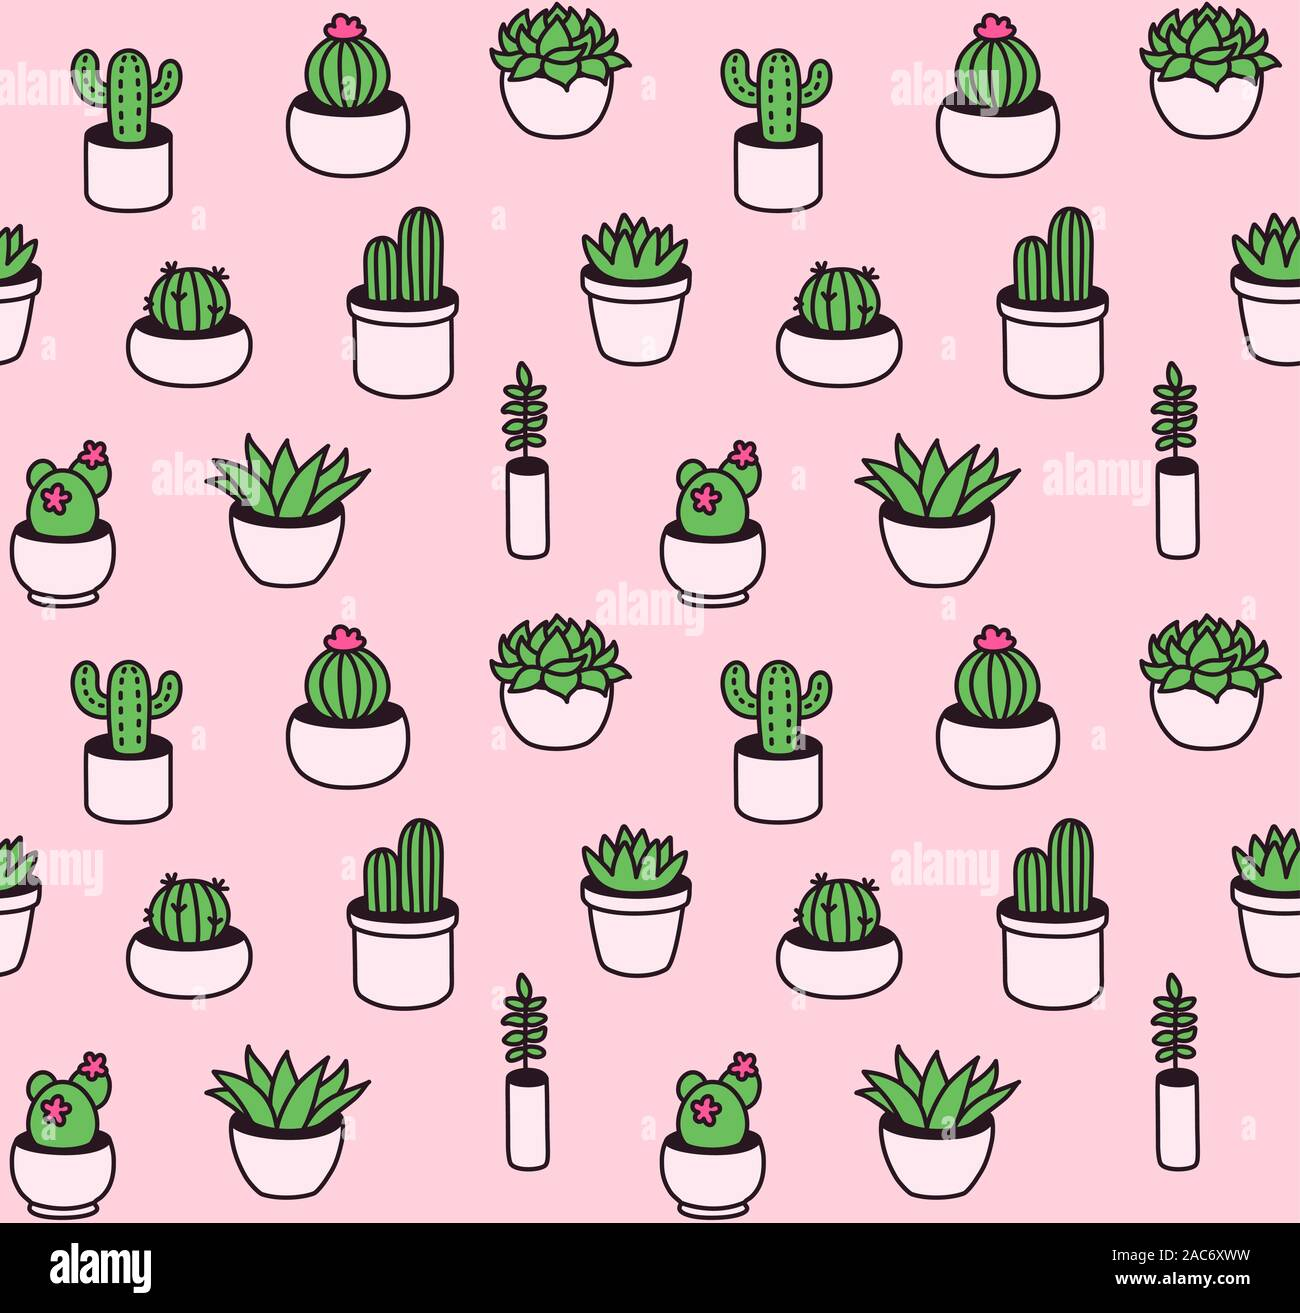 Seamless Pattern Of Hand Drawn Cacti And Succulents In Cute Little Pots Houseplant Doodles In Simple Cartoon Vector Style Stock Vector Image Art Alamy